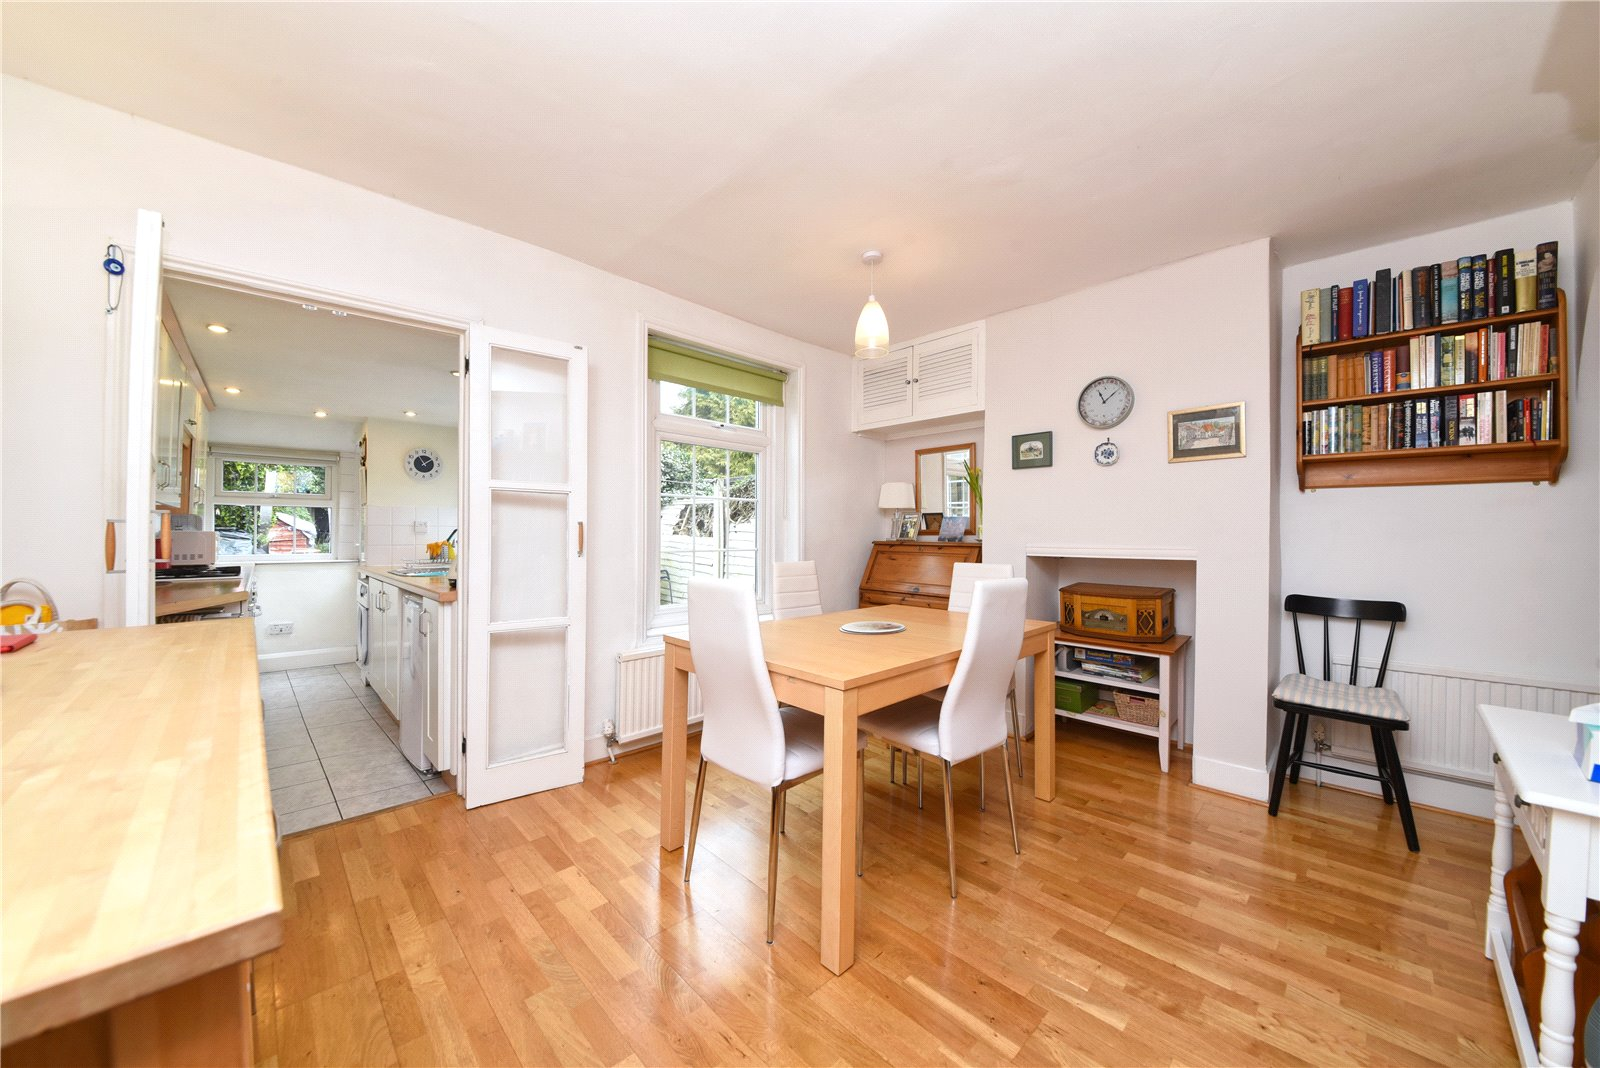 2 bed house for sale in London, N12 9JN  - Property Image 3